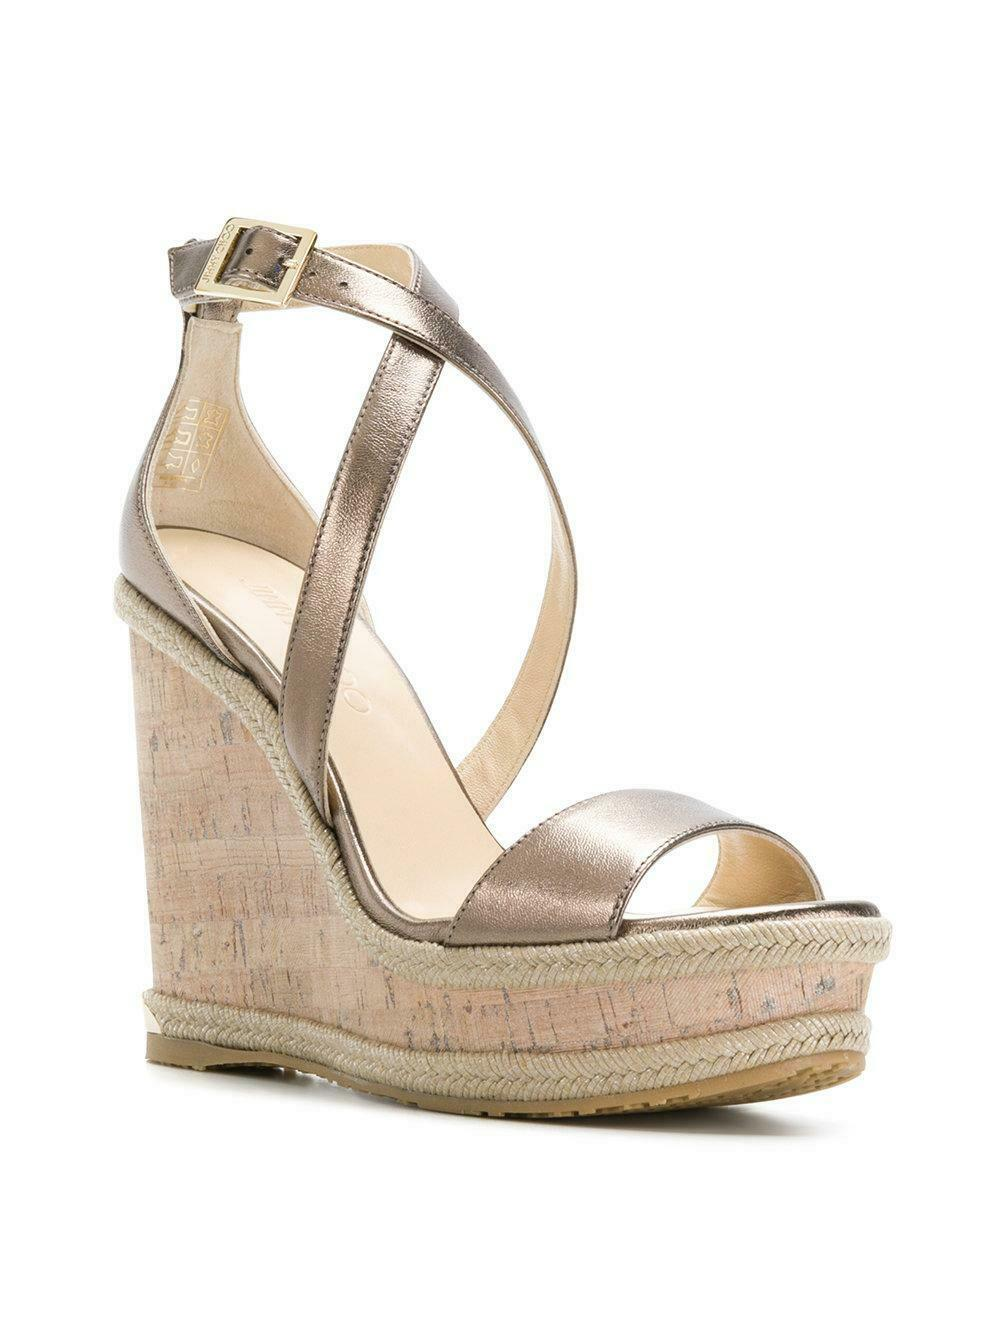 Jimmy Choo Portia 120 Antique Gold Leather Cork Wedge Sandals Espadrilles 39.5 - Click Image to Close